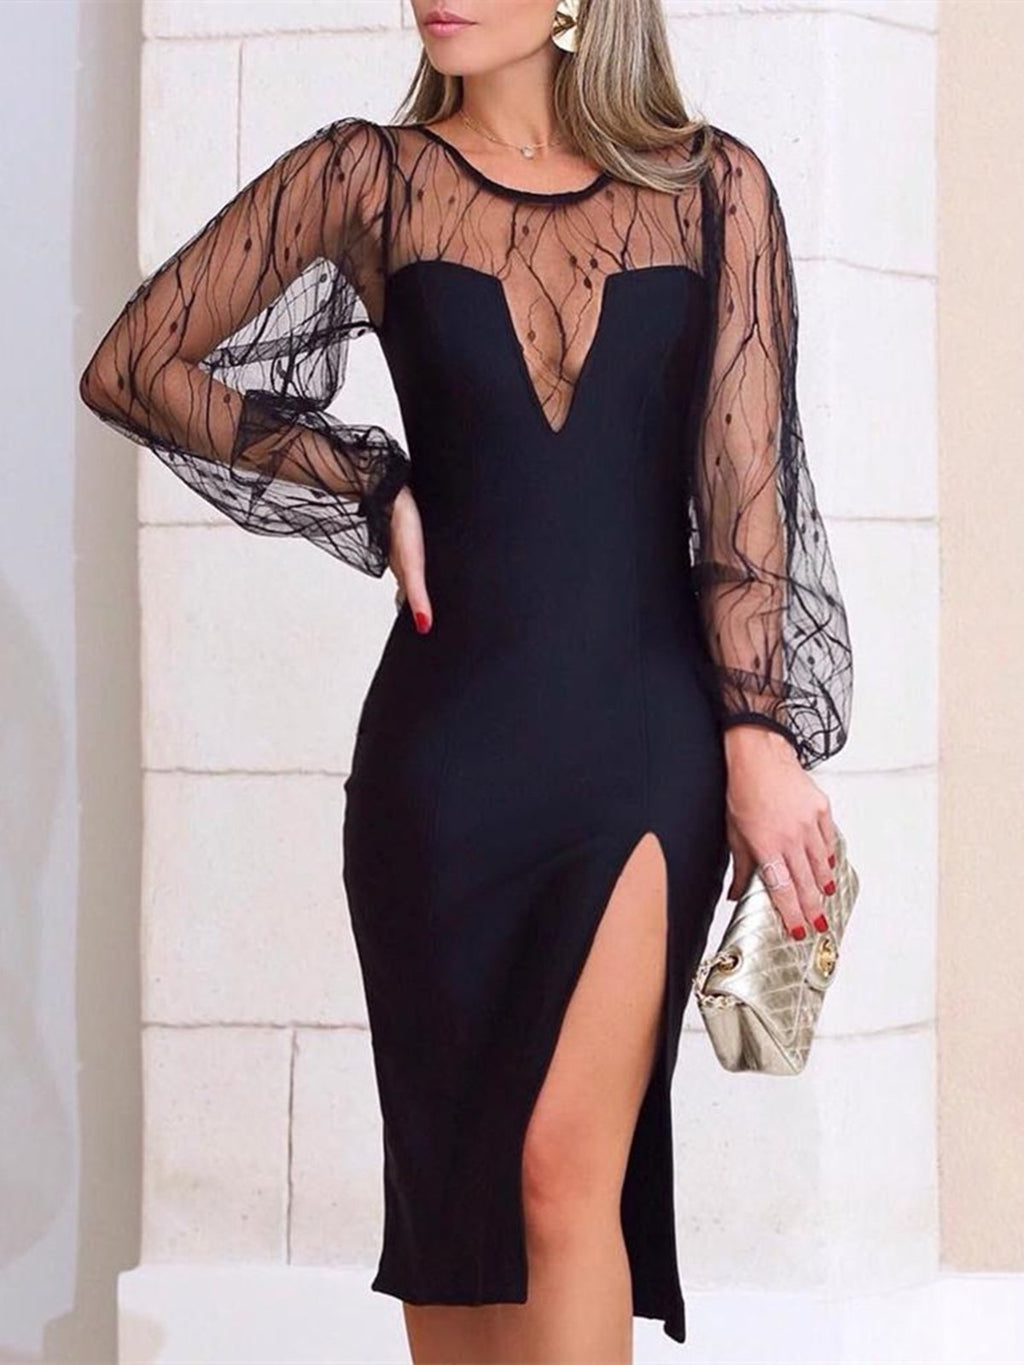 Black Sexy Plus Size Mesh Overlay Long Sleeve Evening Gowns Bodycon Dress Rikkishop